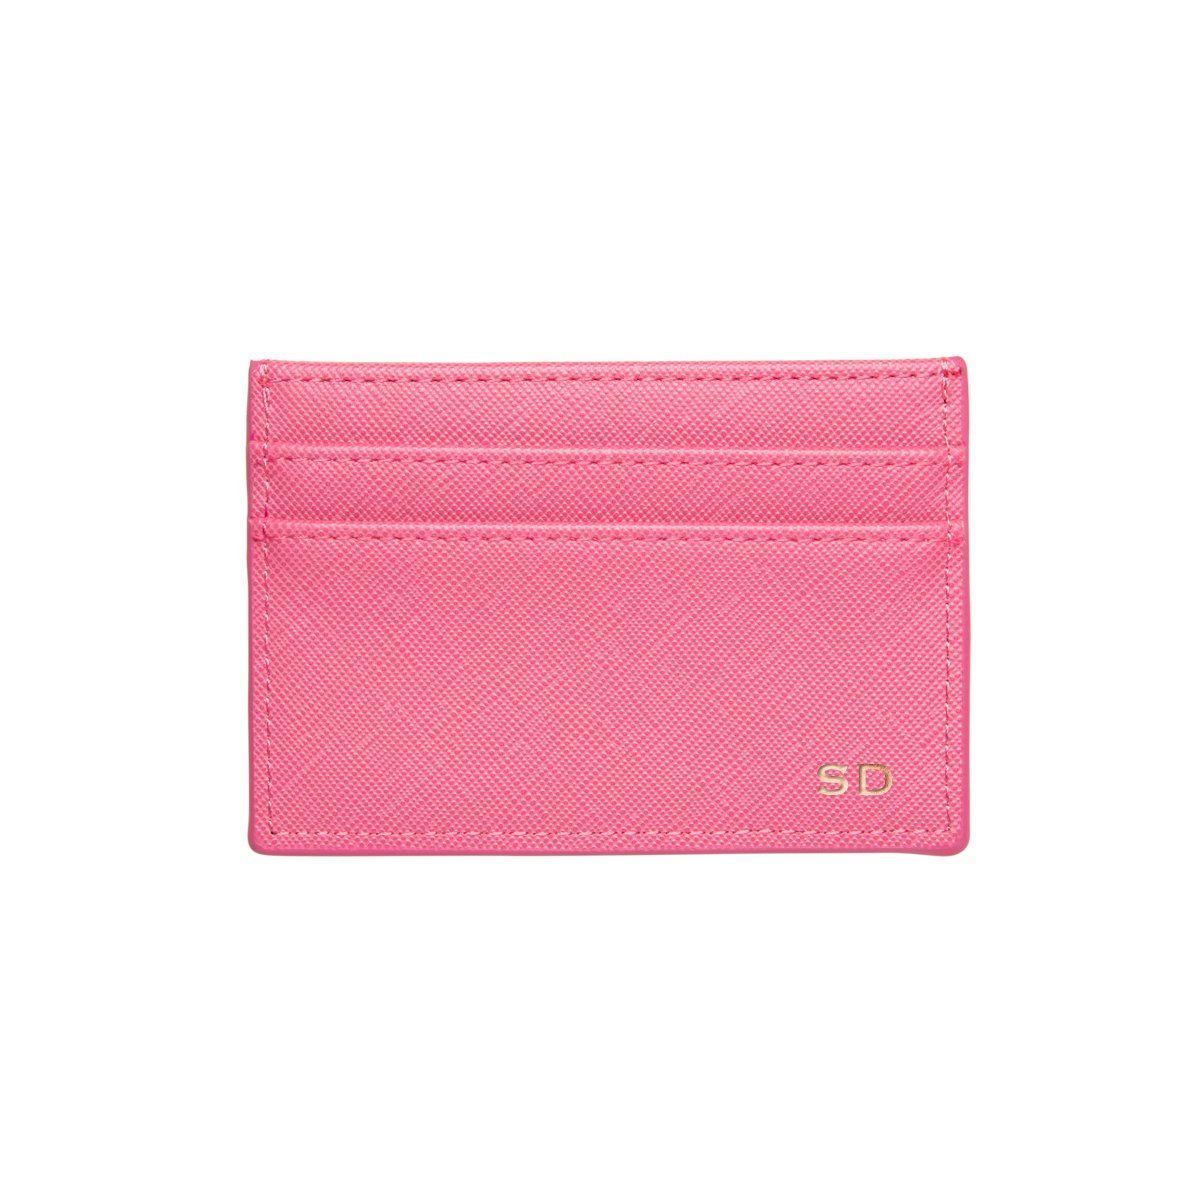 Flamingo Pink Clea Card Holder